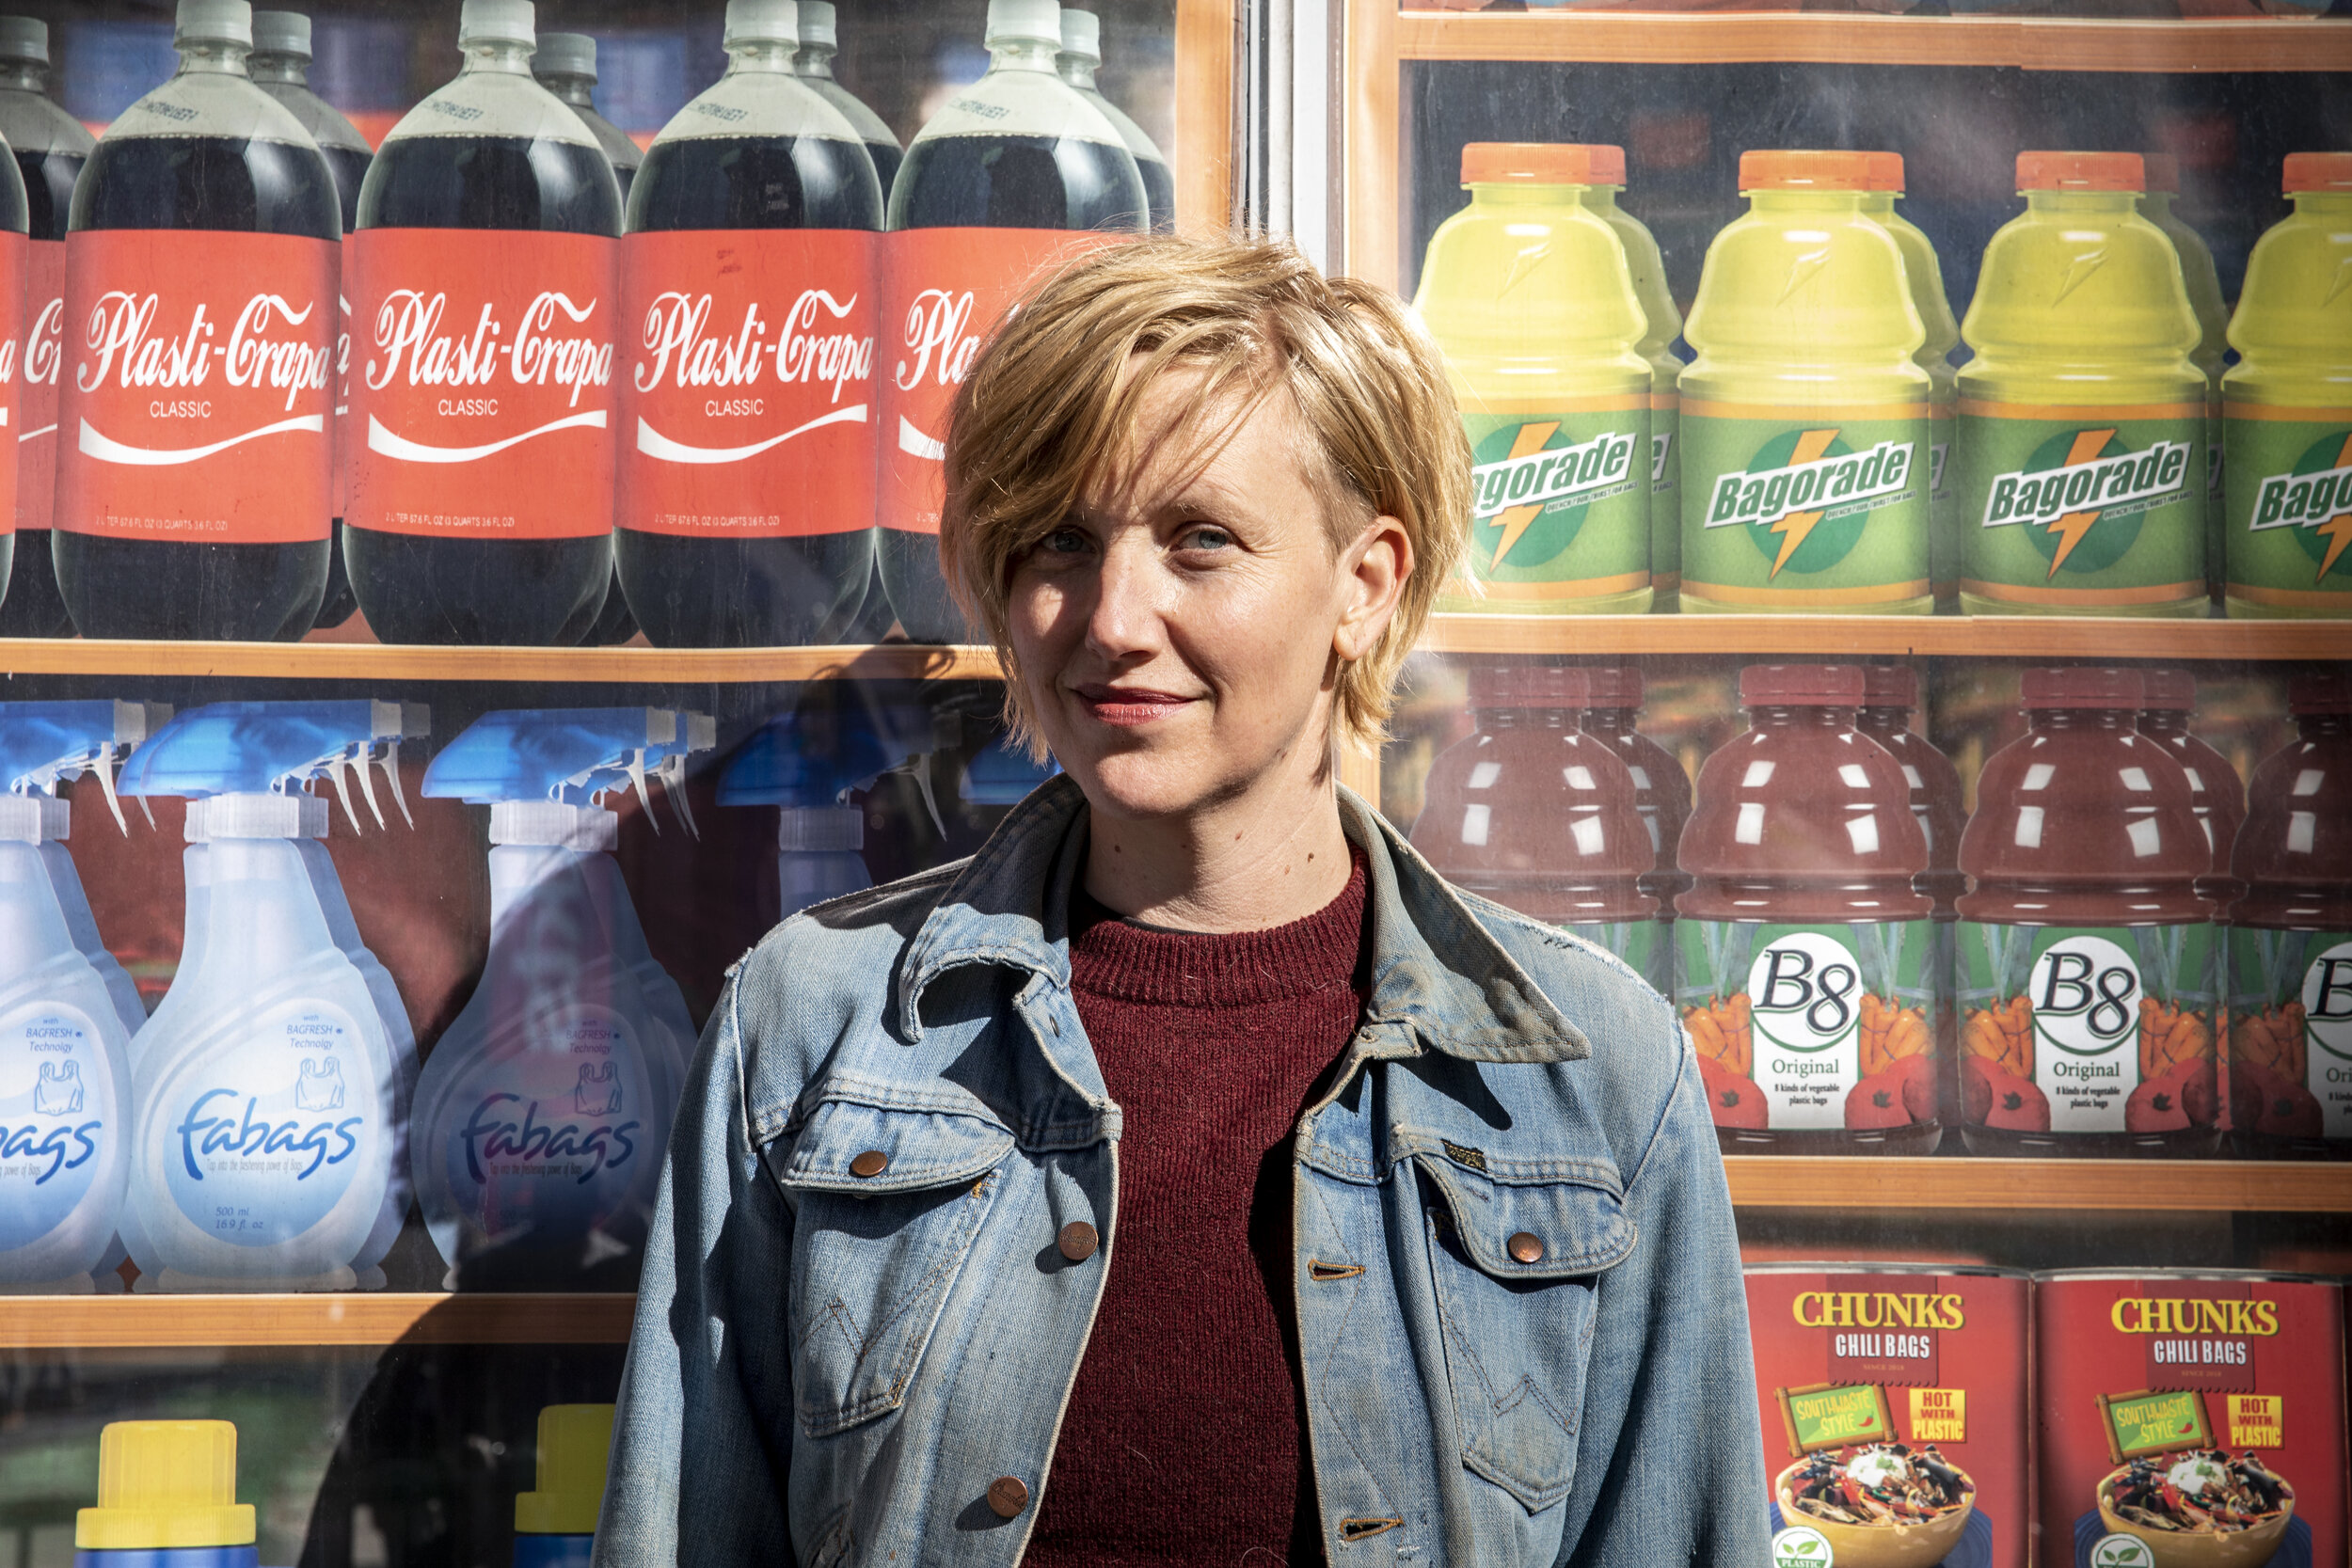 Artist Robin Frohardt stands in front of grocery store items made out of plastic bags from one of her exhibits